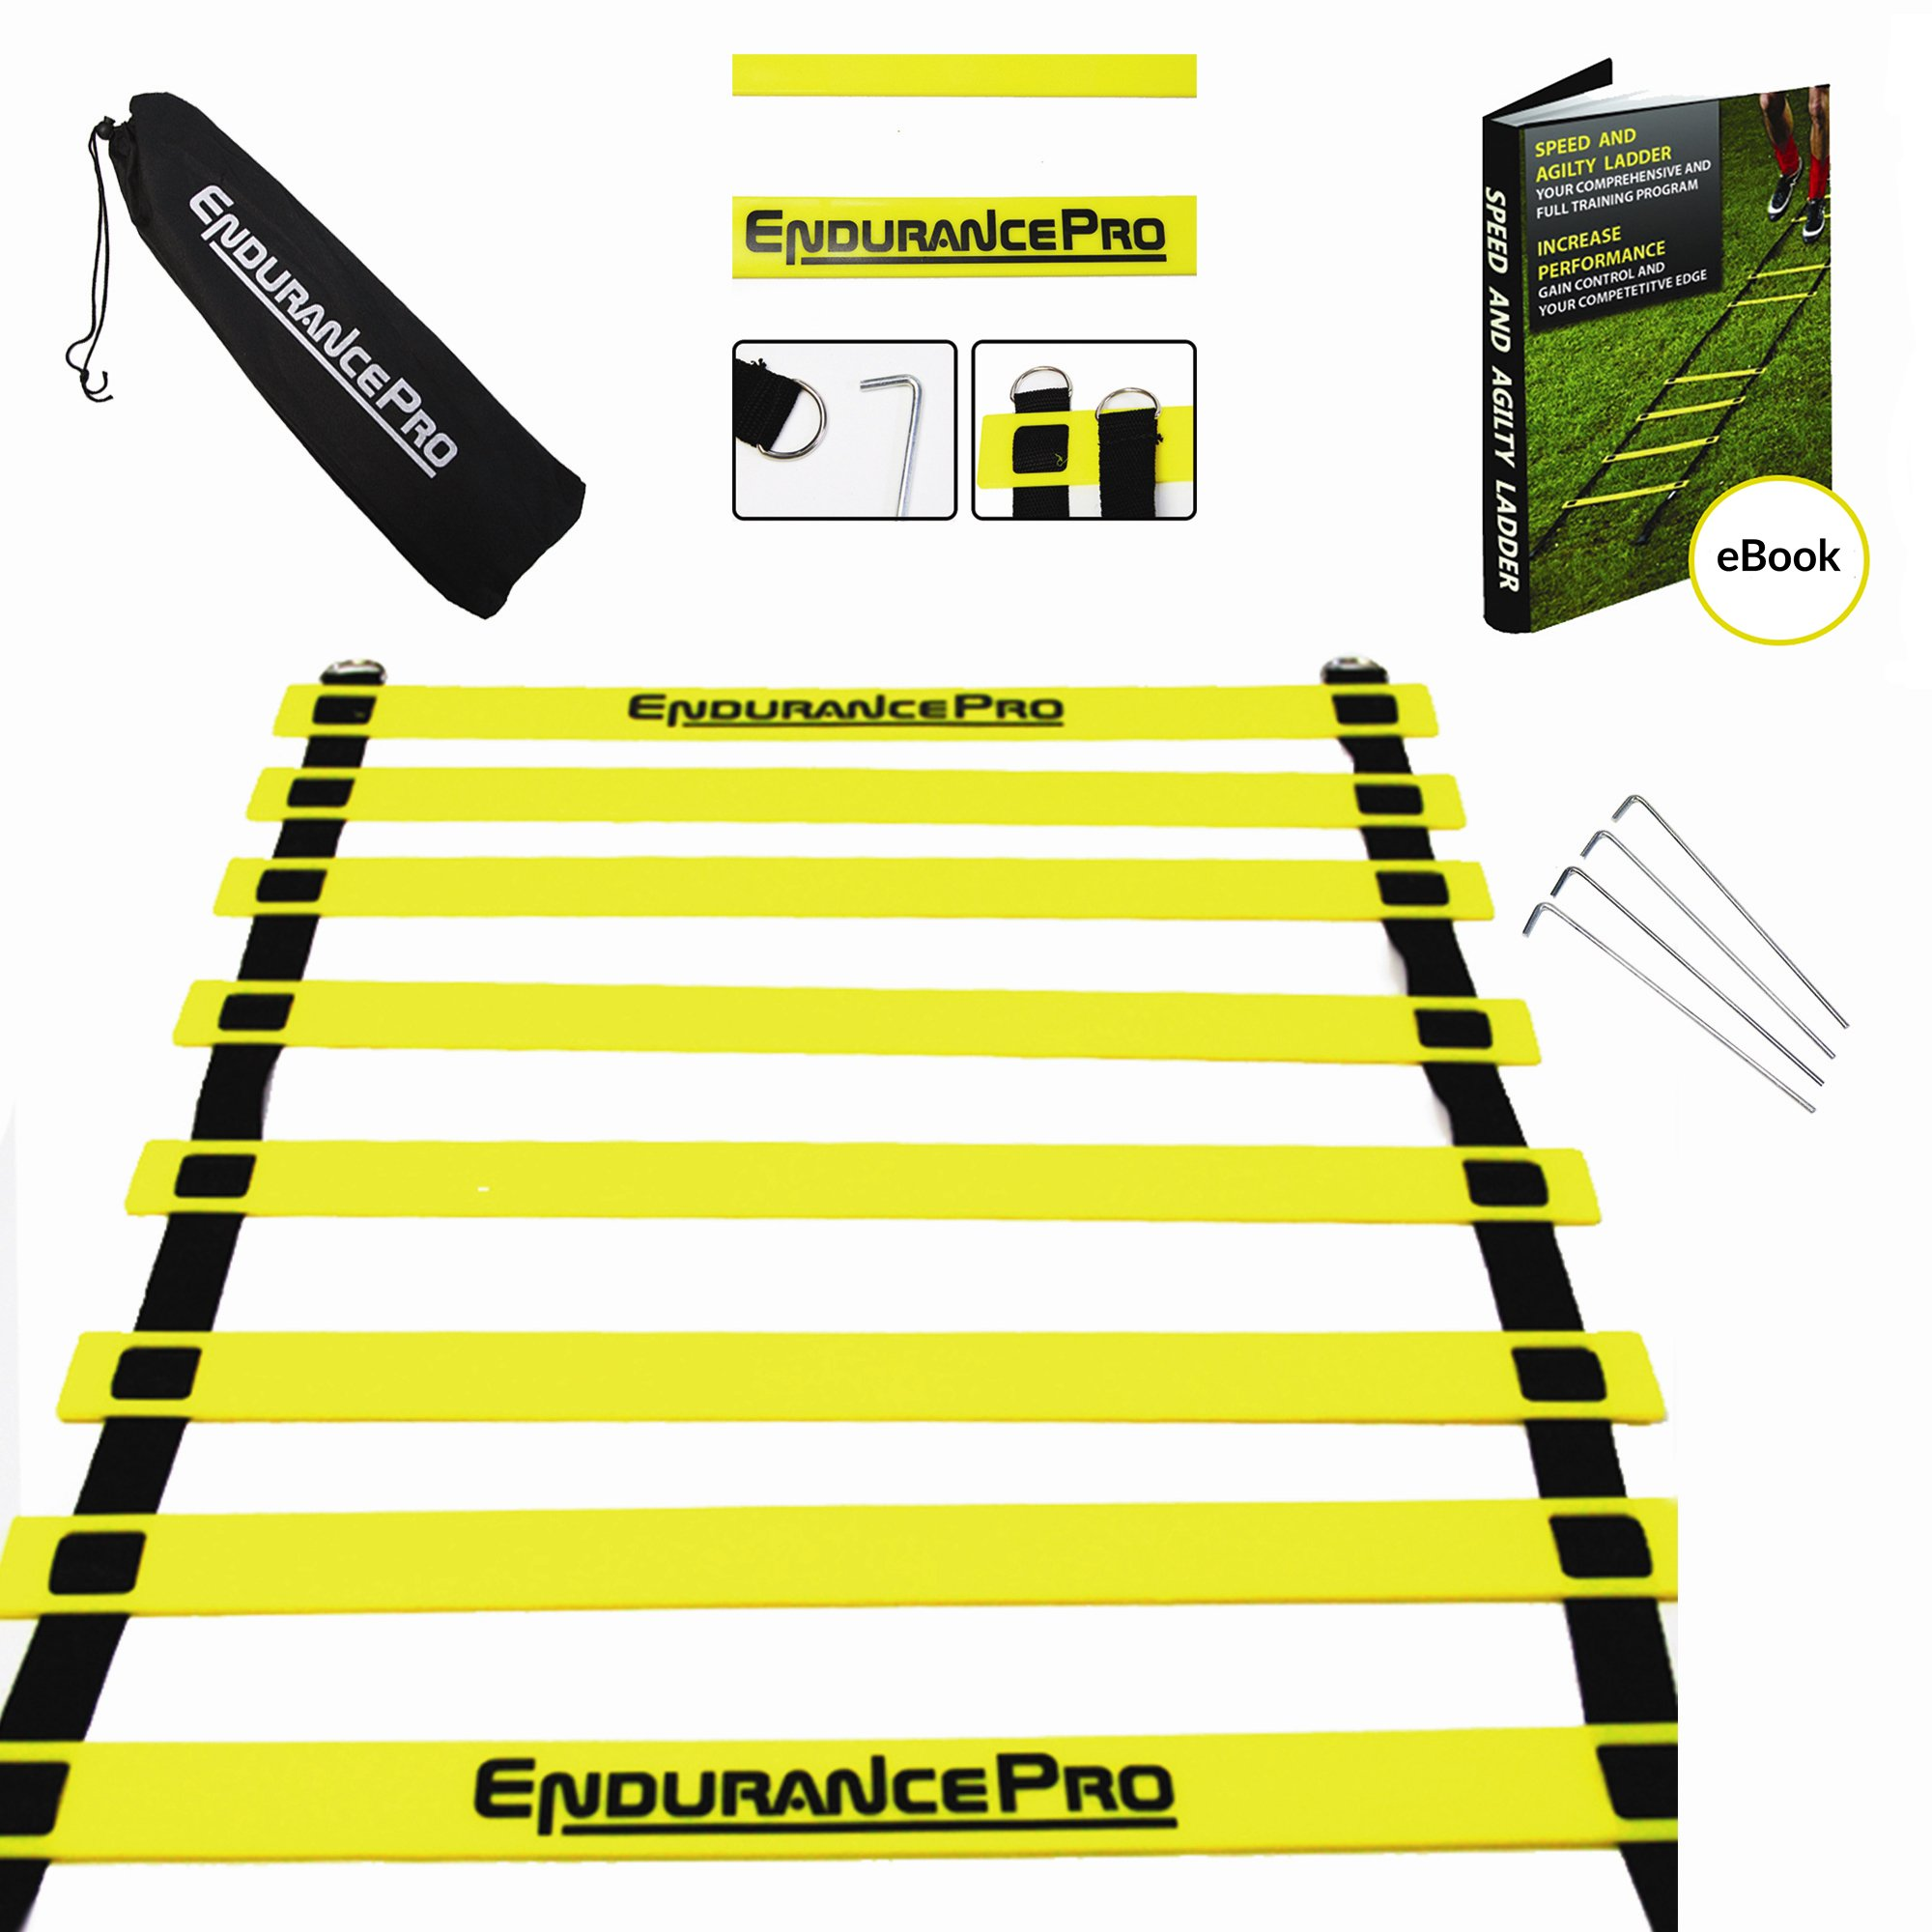 Agility Ladder Ideal Workout Ladder Training Ladder With Ladder Drills eBook, - Value Training - Ideal Soccer Training Equipment Ideal Football Training Equipment By Endurance Pro by Endurance Pro